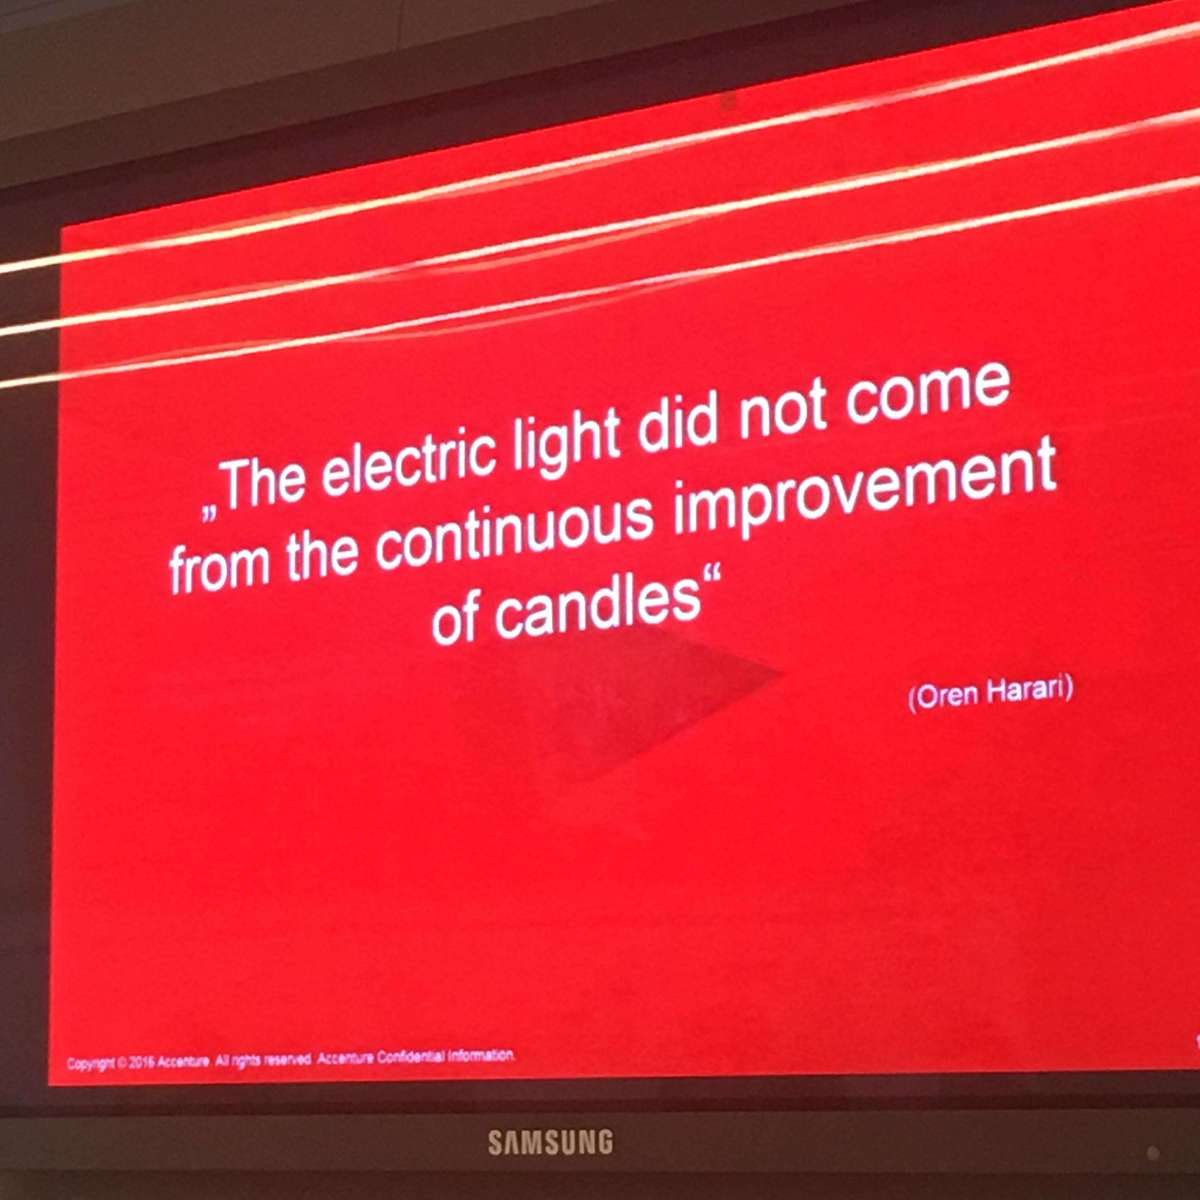 """the electric light did not come from the improvement of candles"""